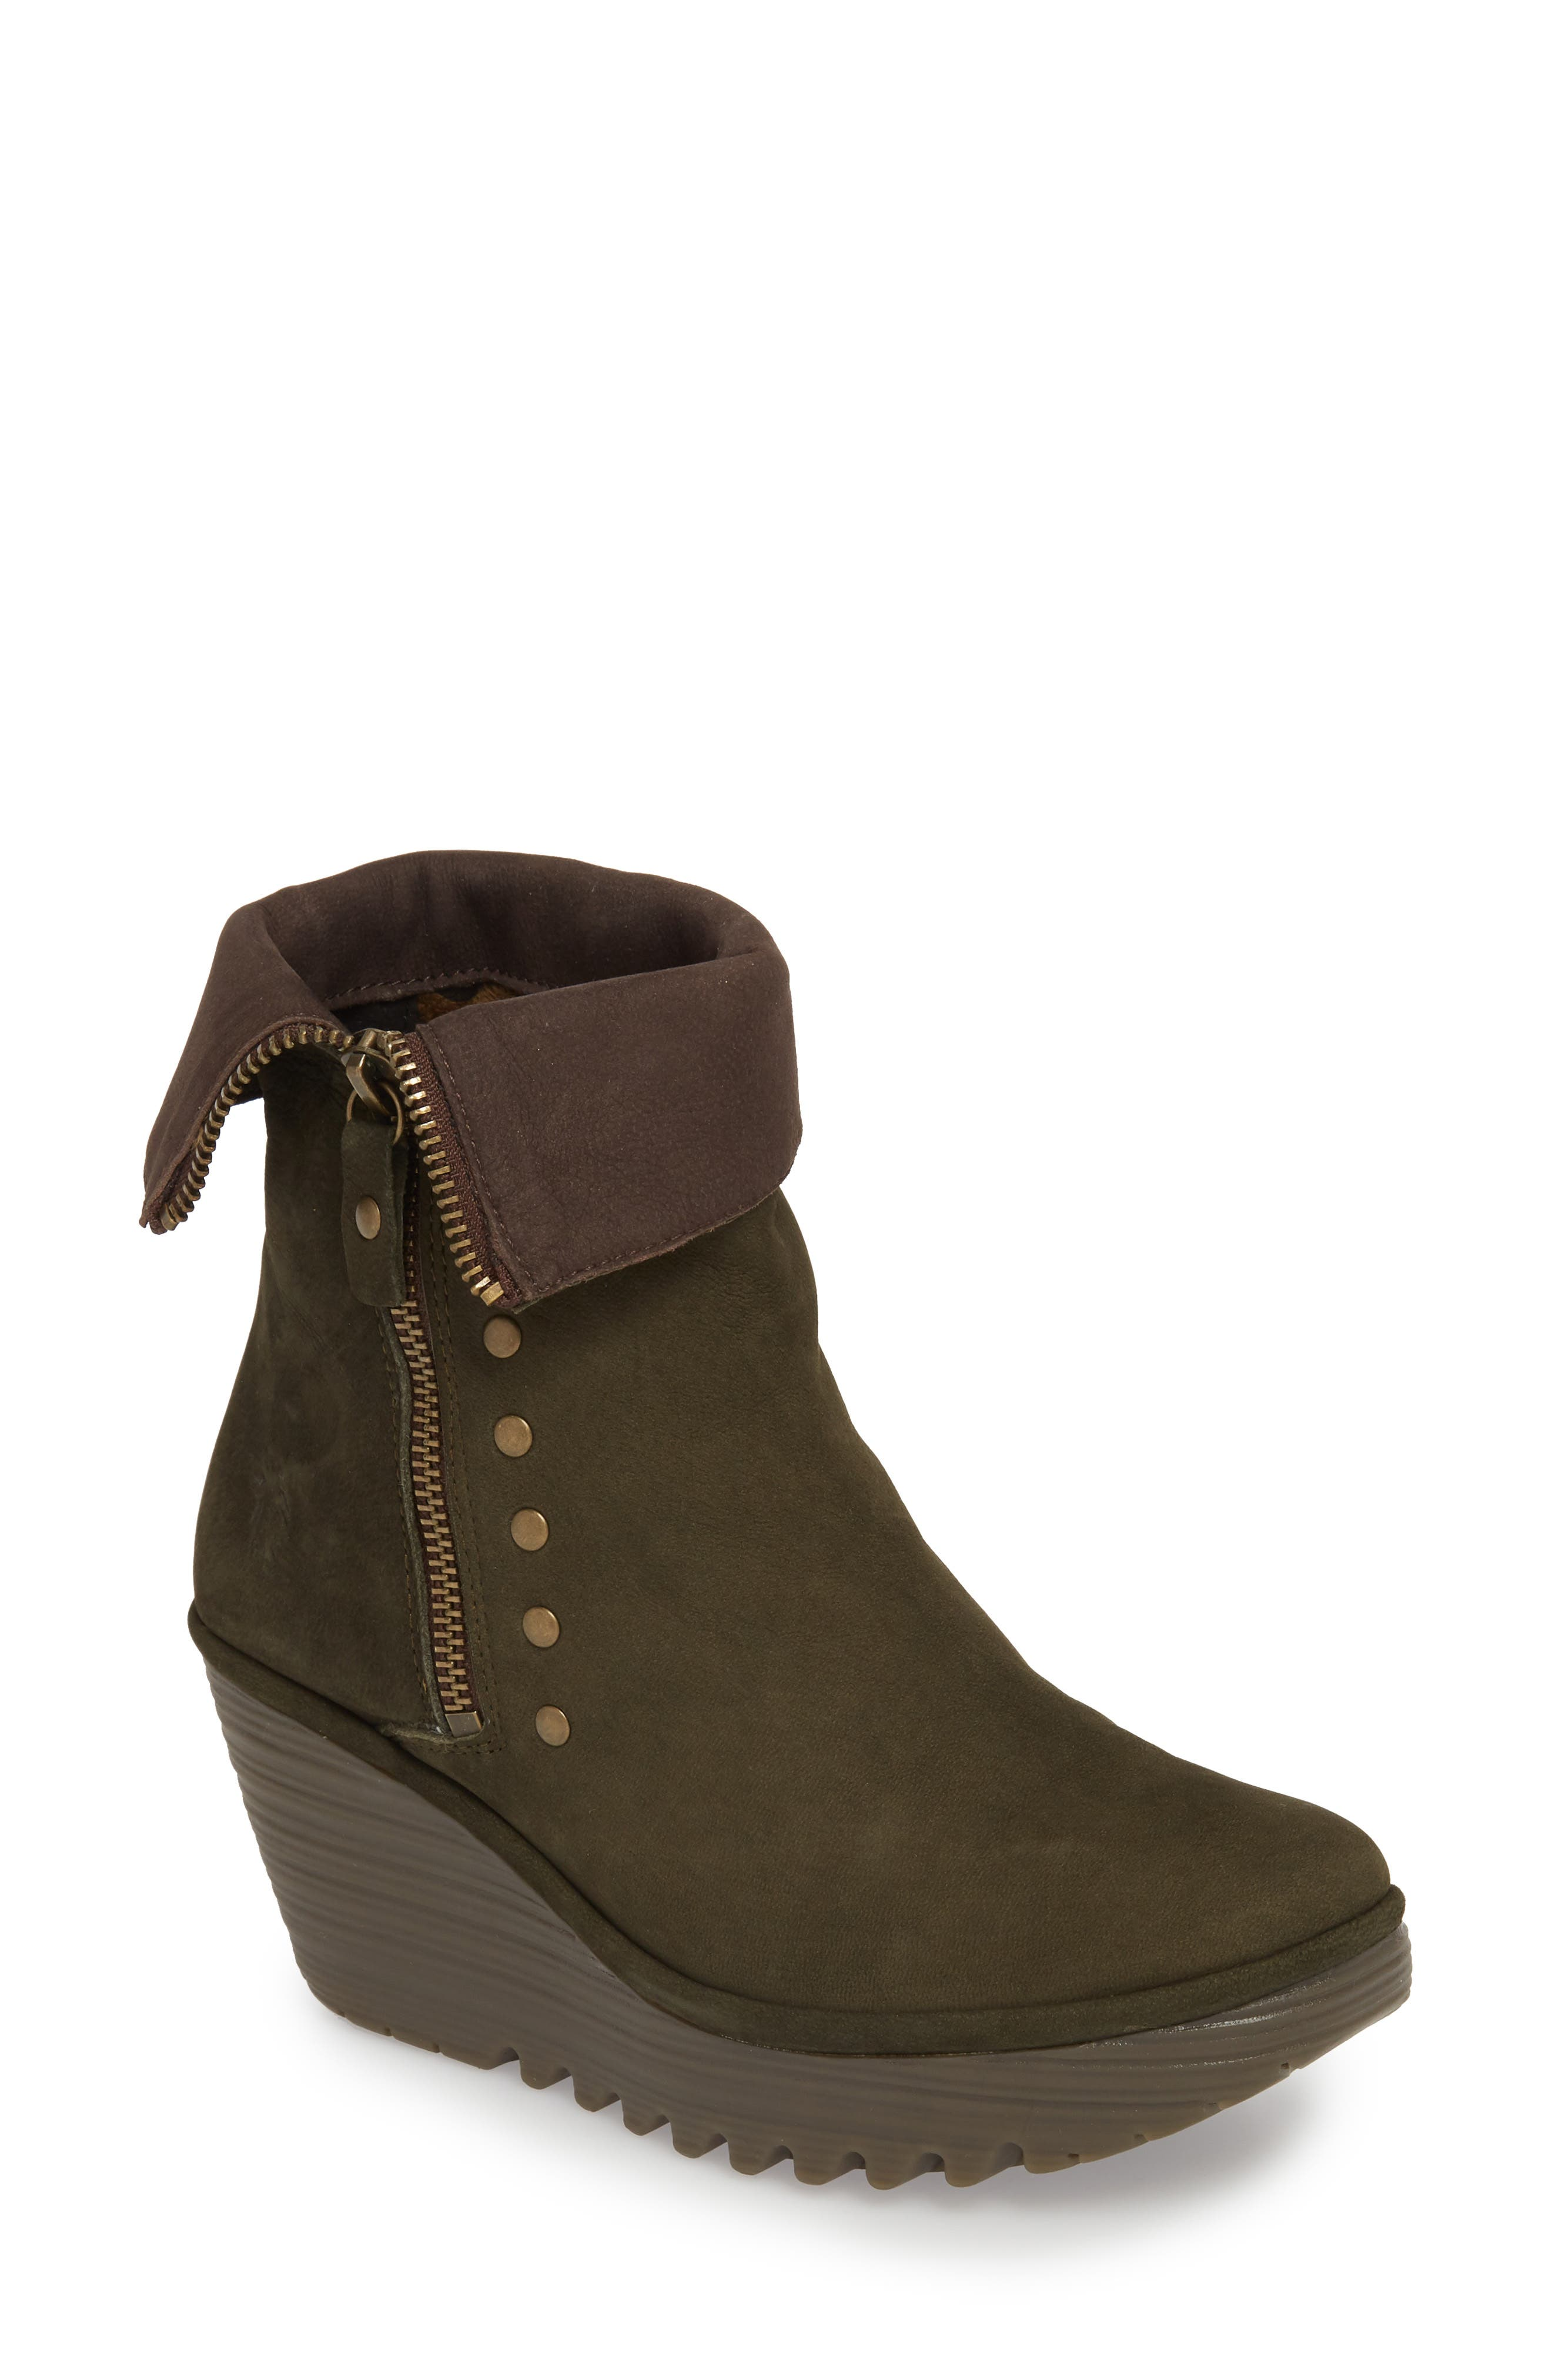 Fly London Yemi Wedge Bootie - Green